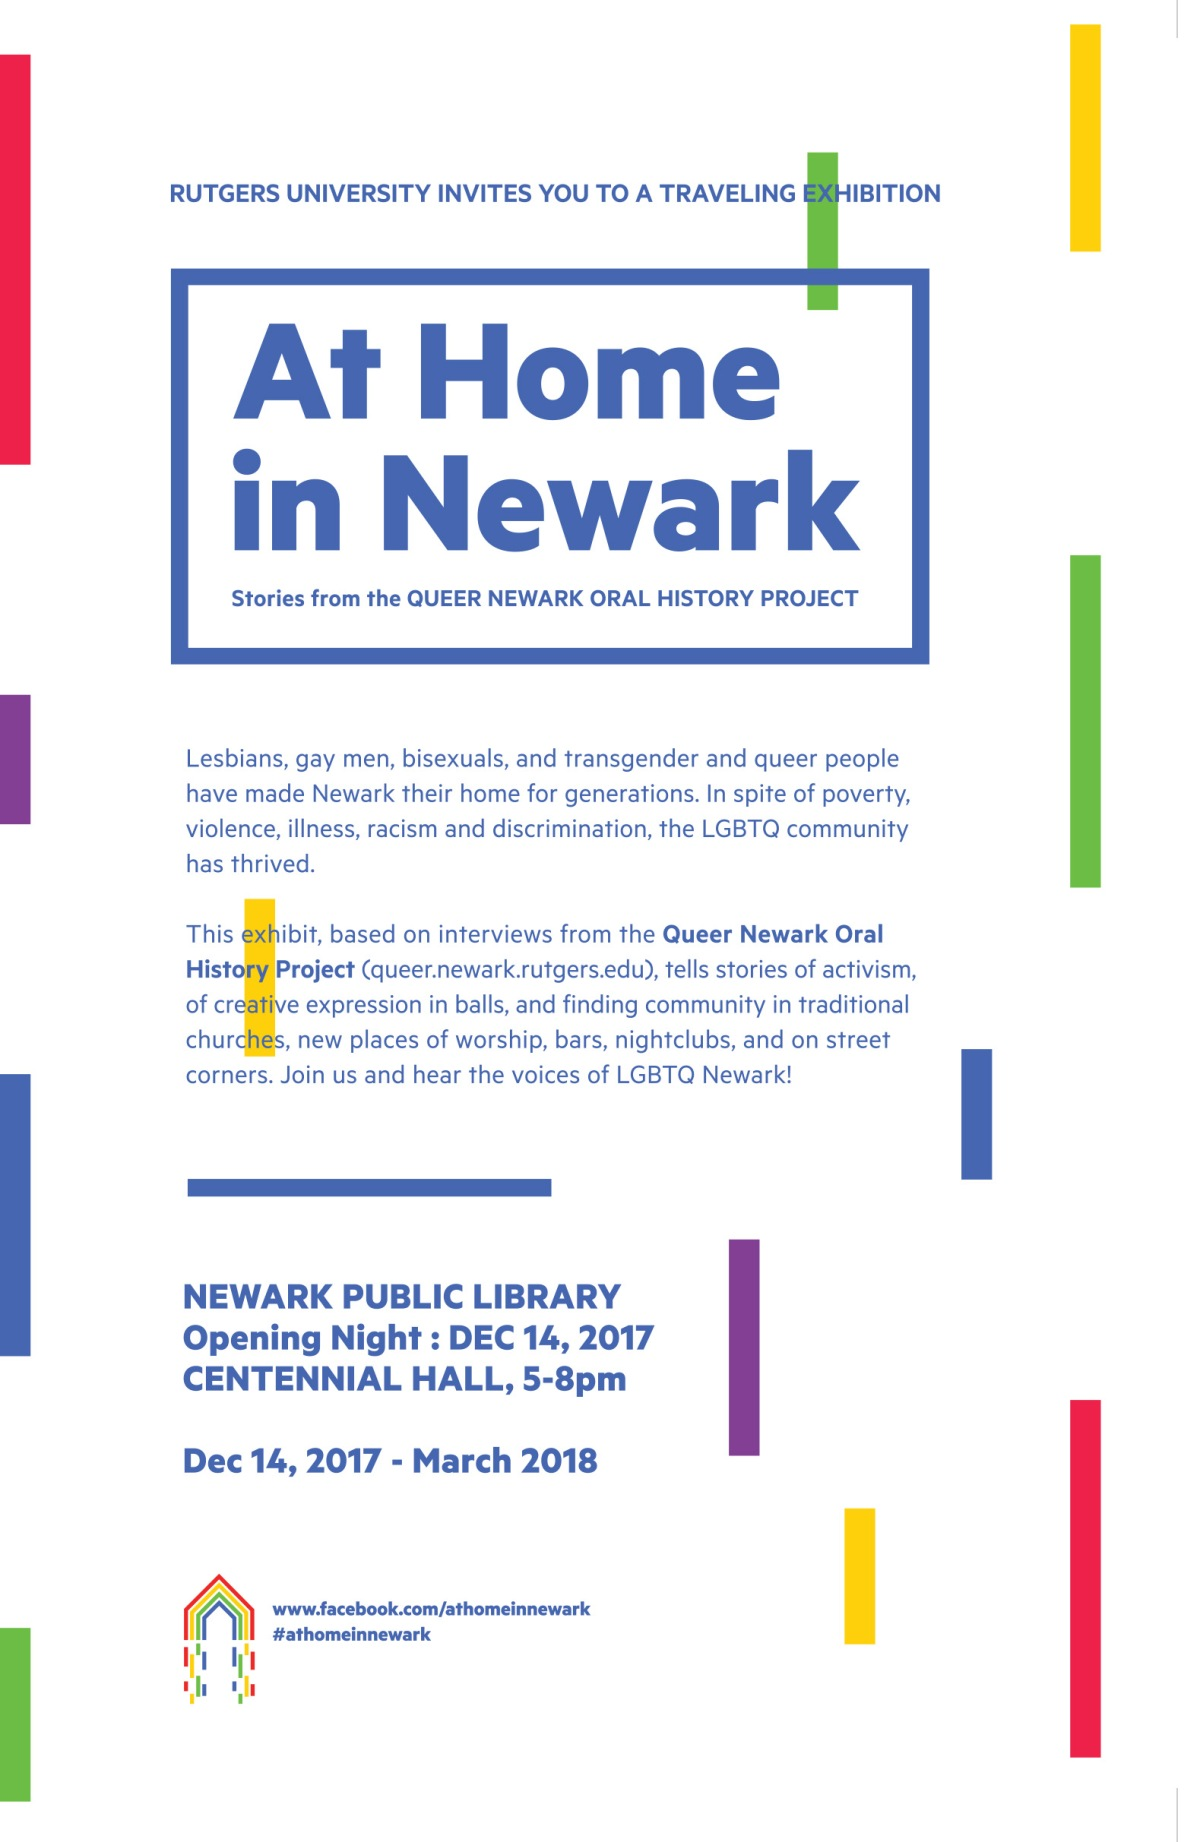 At Home in Newark: Stories from the Queer Newark Oral History Project